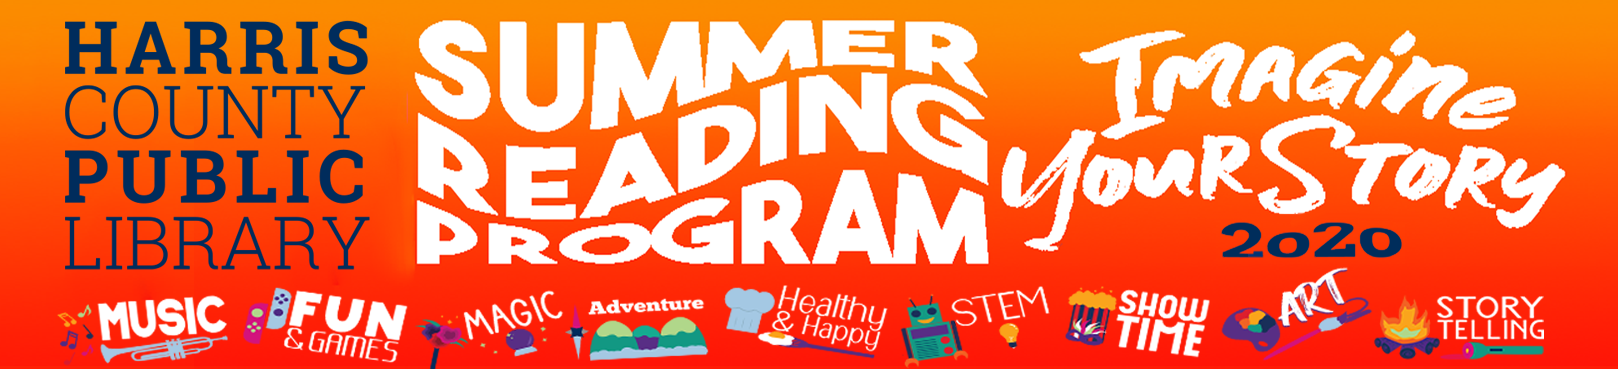 Harris County Summer Reading Program Information